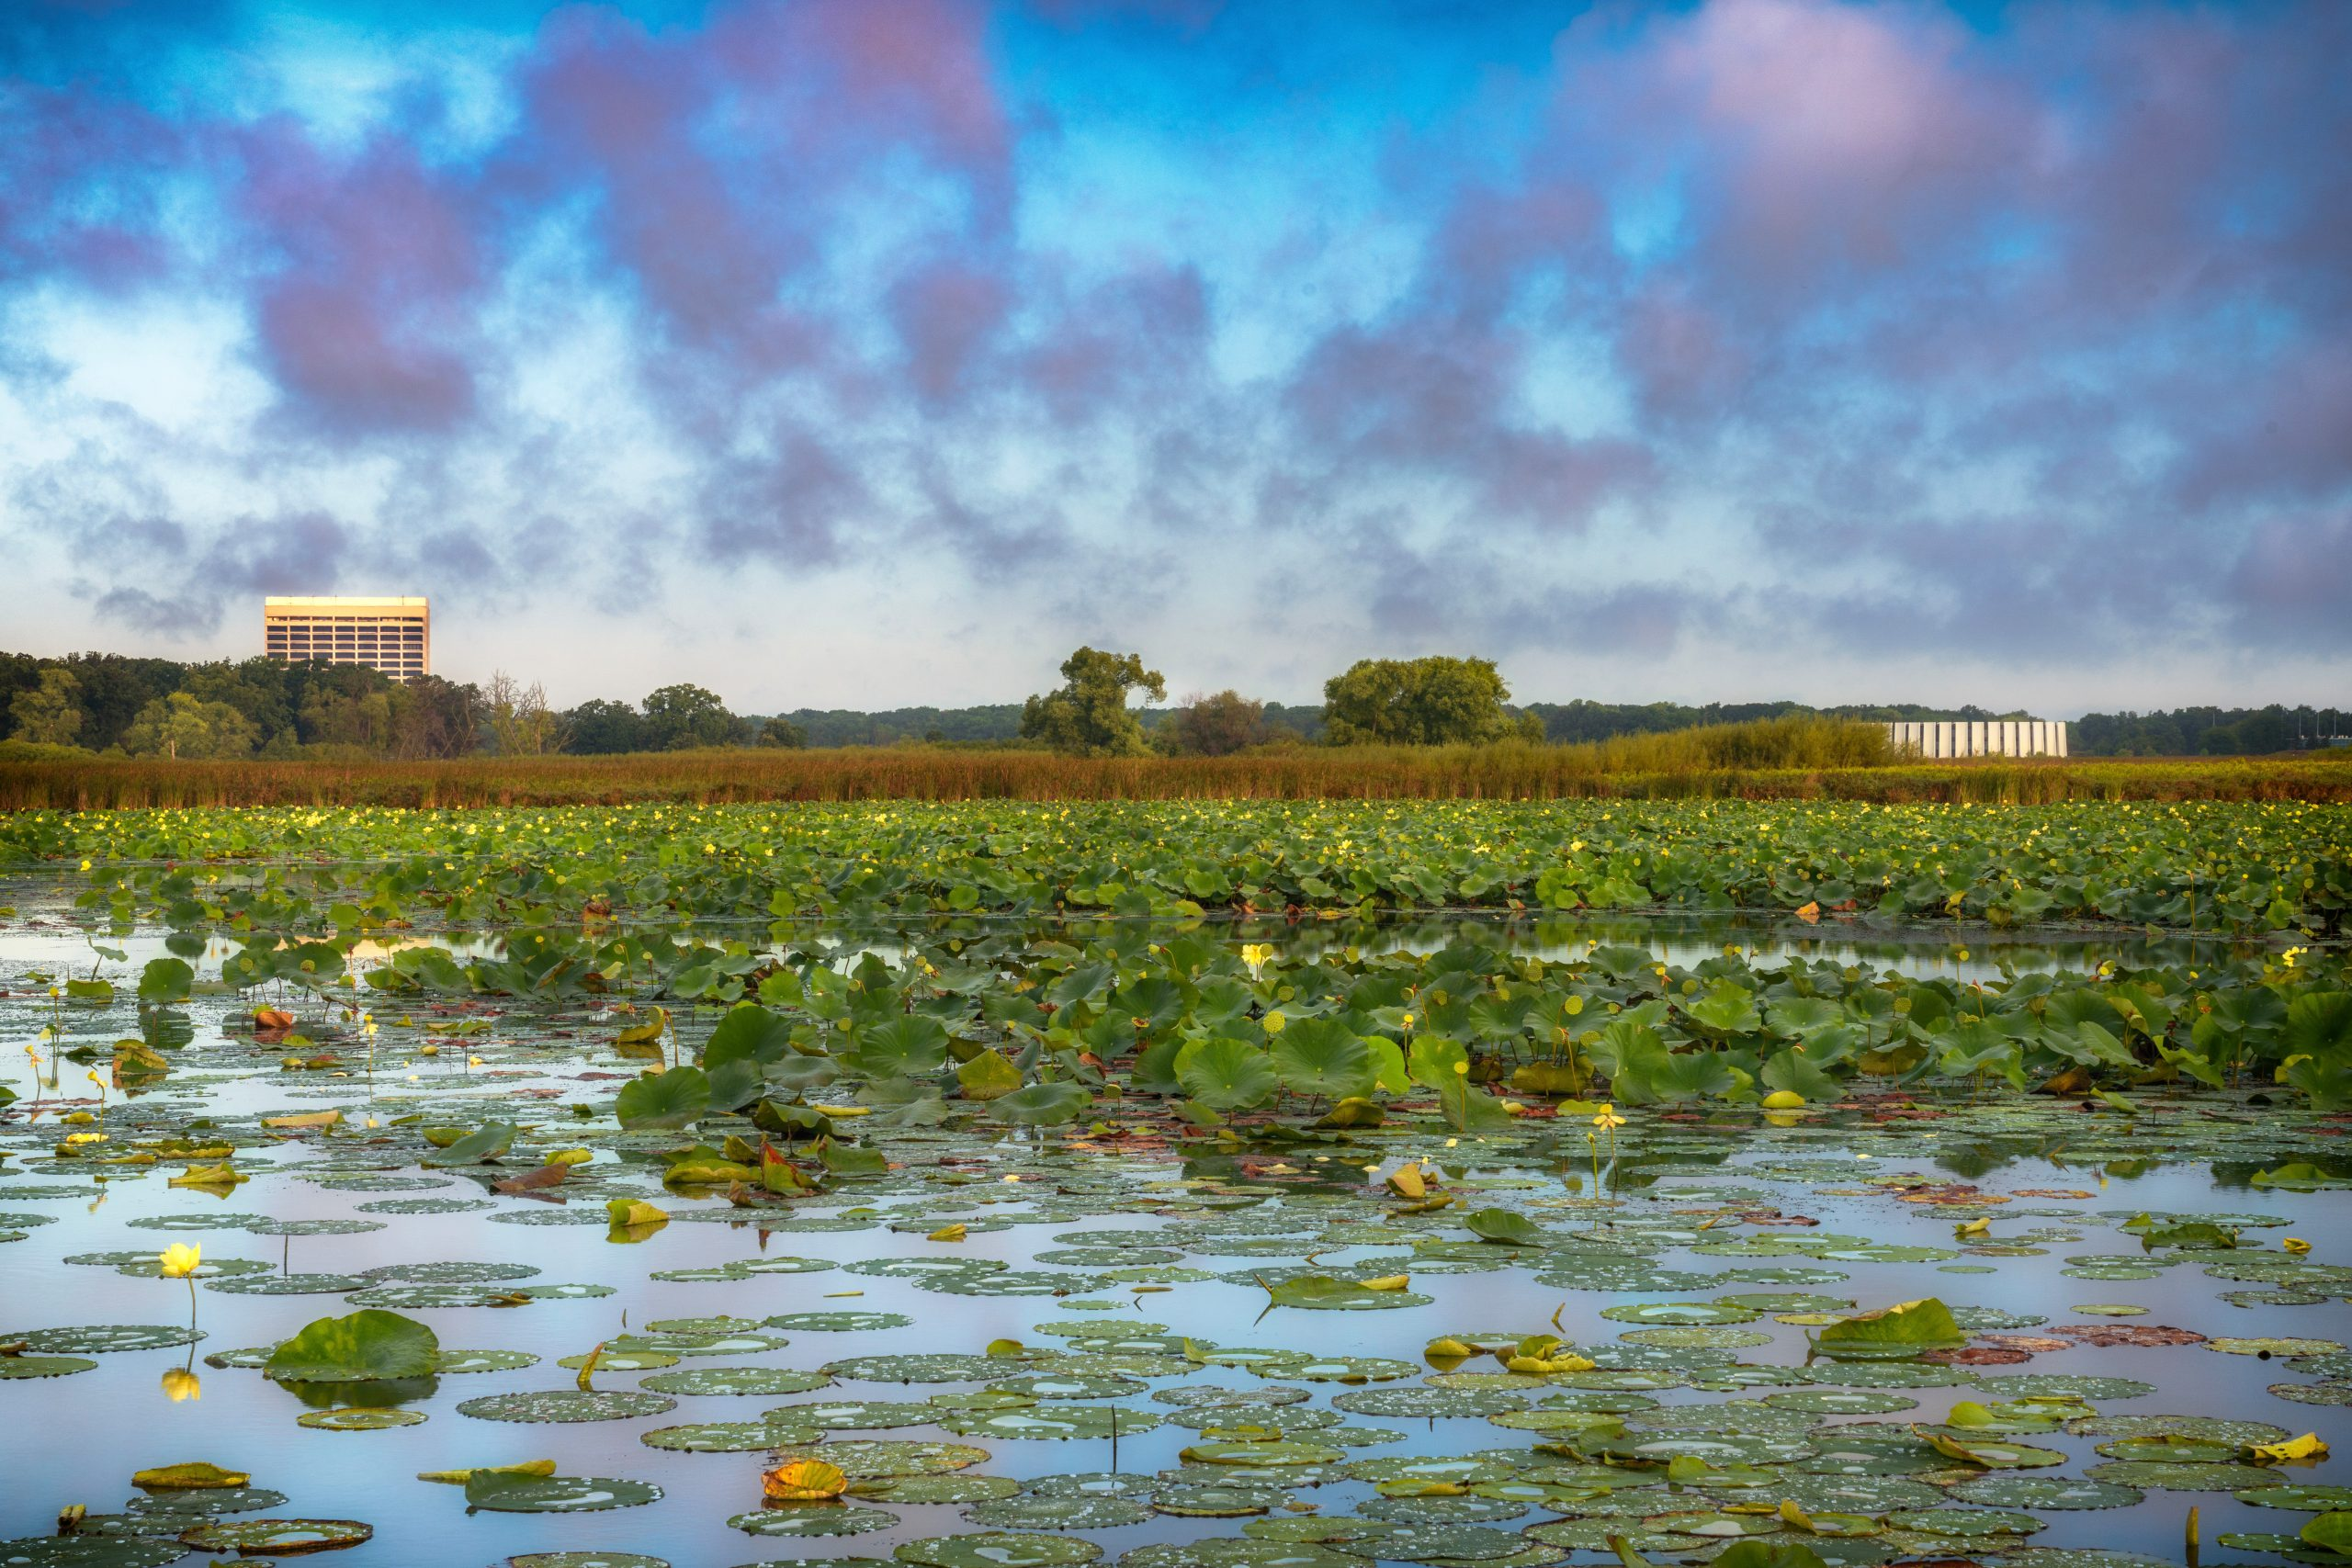 Wilson Hall and Feynman Computing Center peer over a sea of American lotus. nature, landscape, water, pond, plant, American lotus, building, Wilson Hall, Feynman Computing Center, sky, cloud, prairie Photo: Tim Chapman